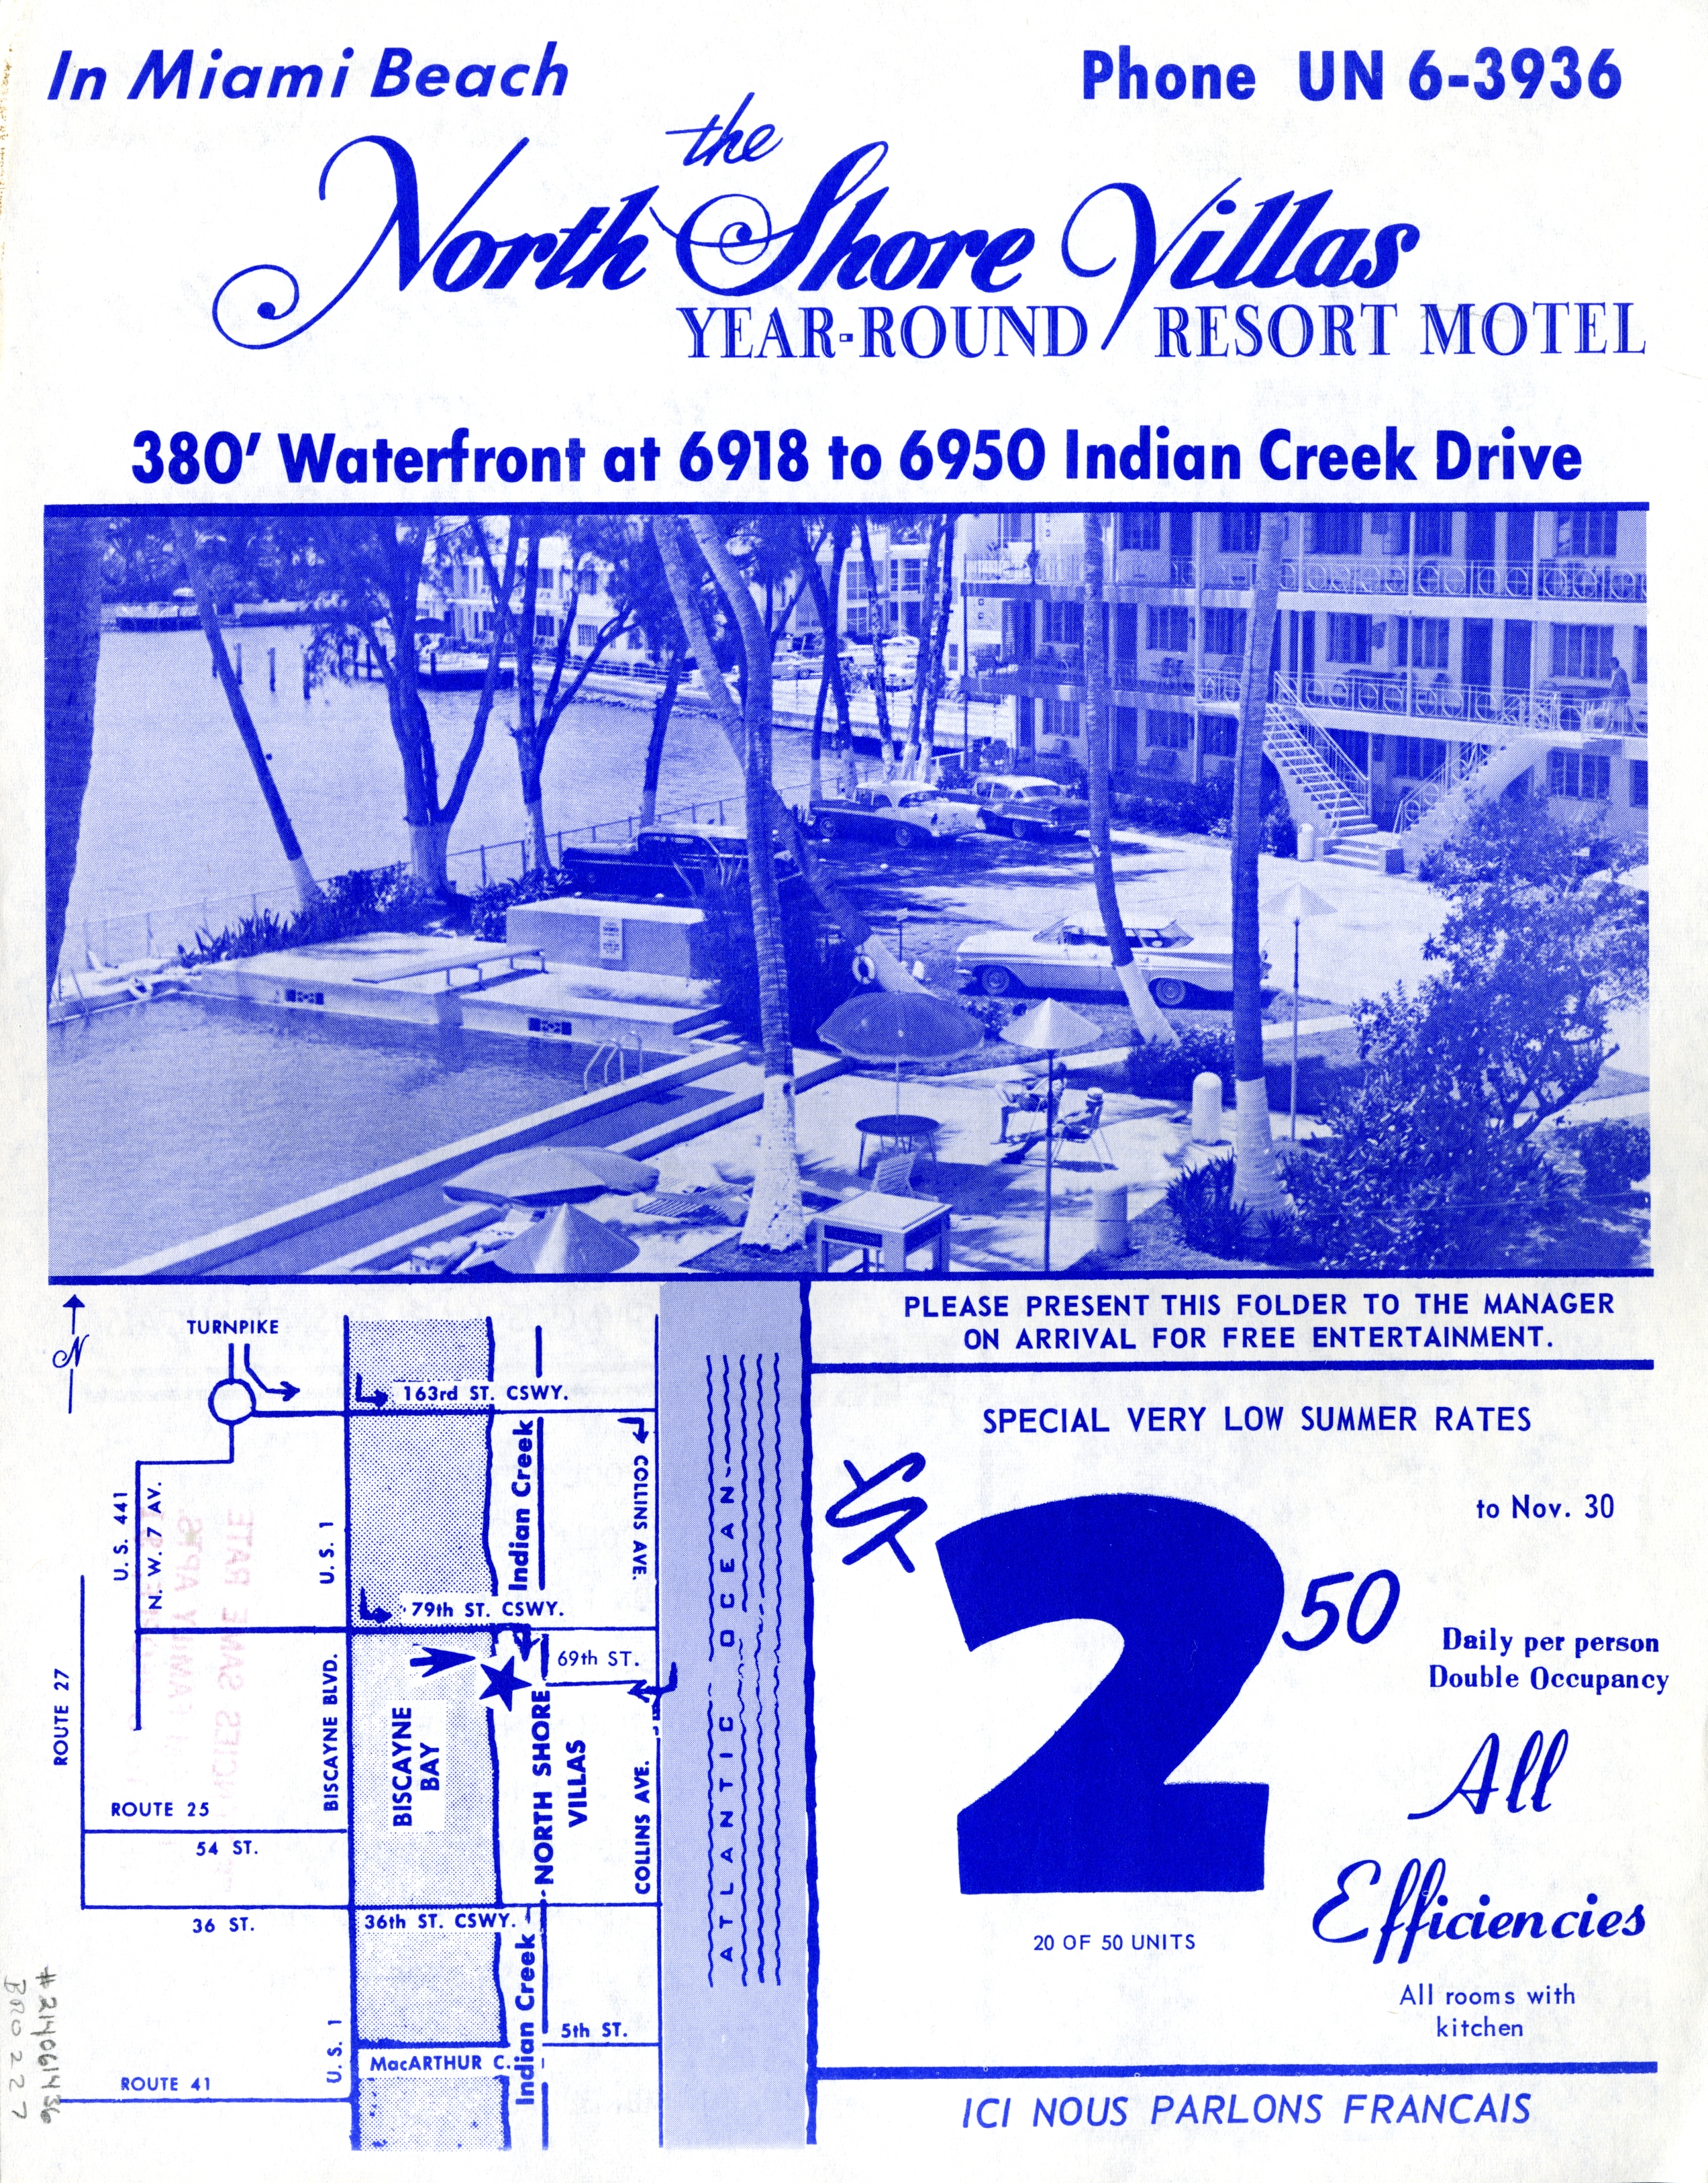 North Shore Villas Motel, Miami Beach, Florida.